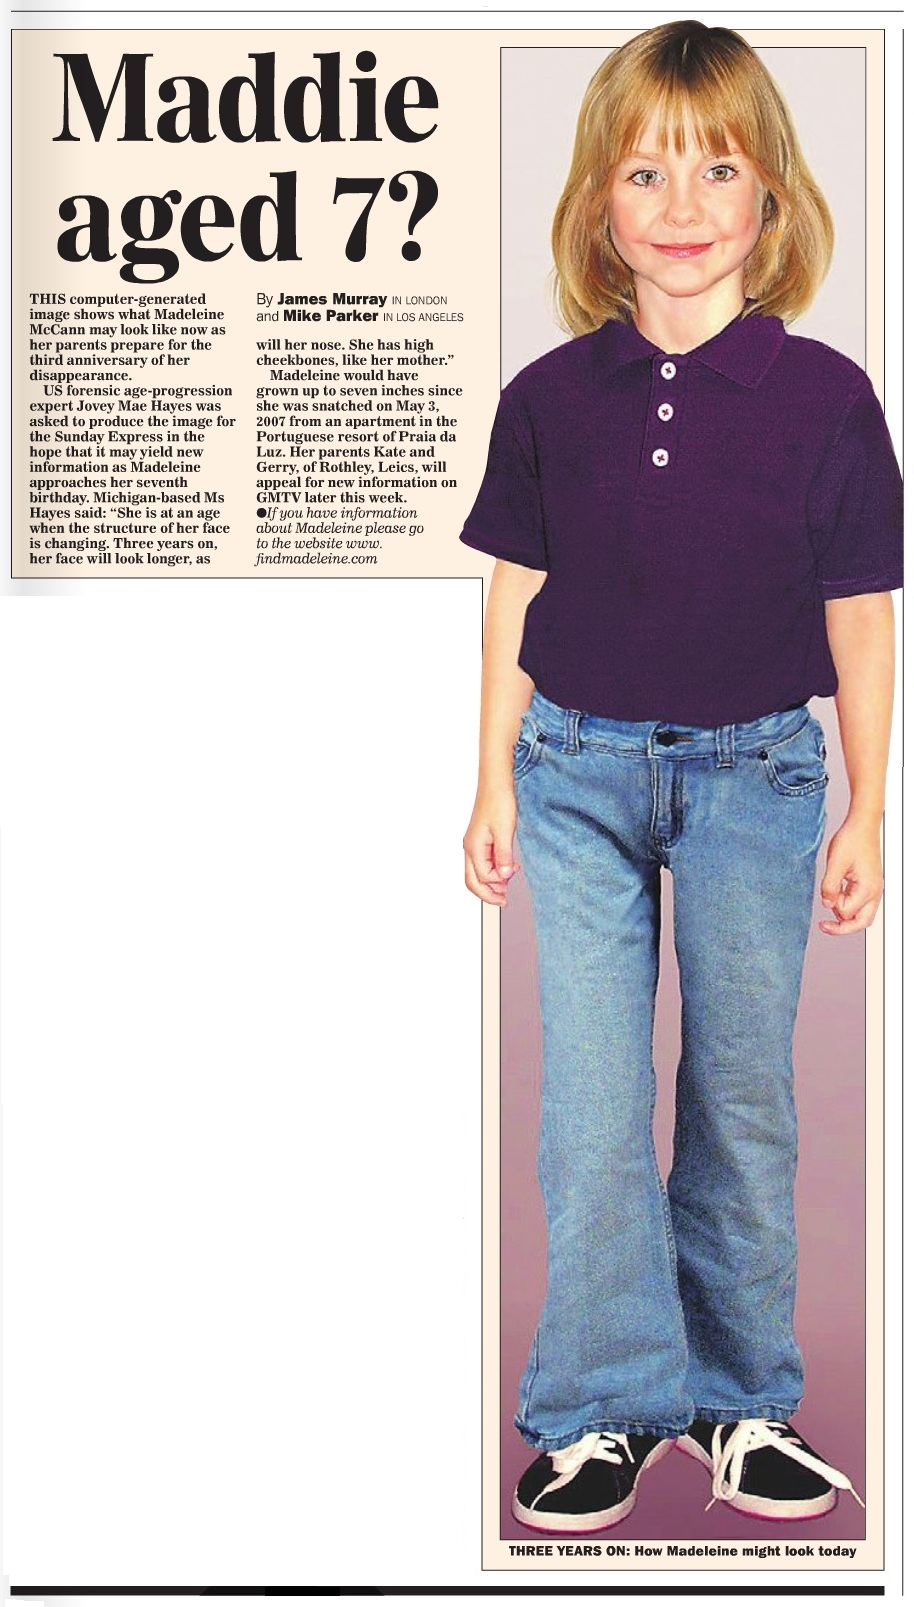 Source: McCannFiles.com, Sunday Express Scan